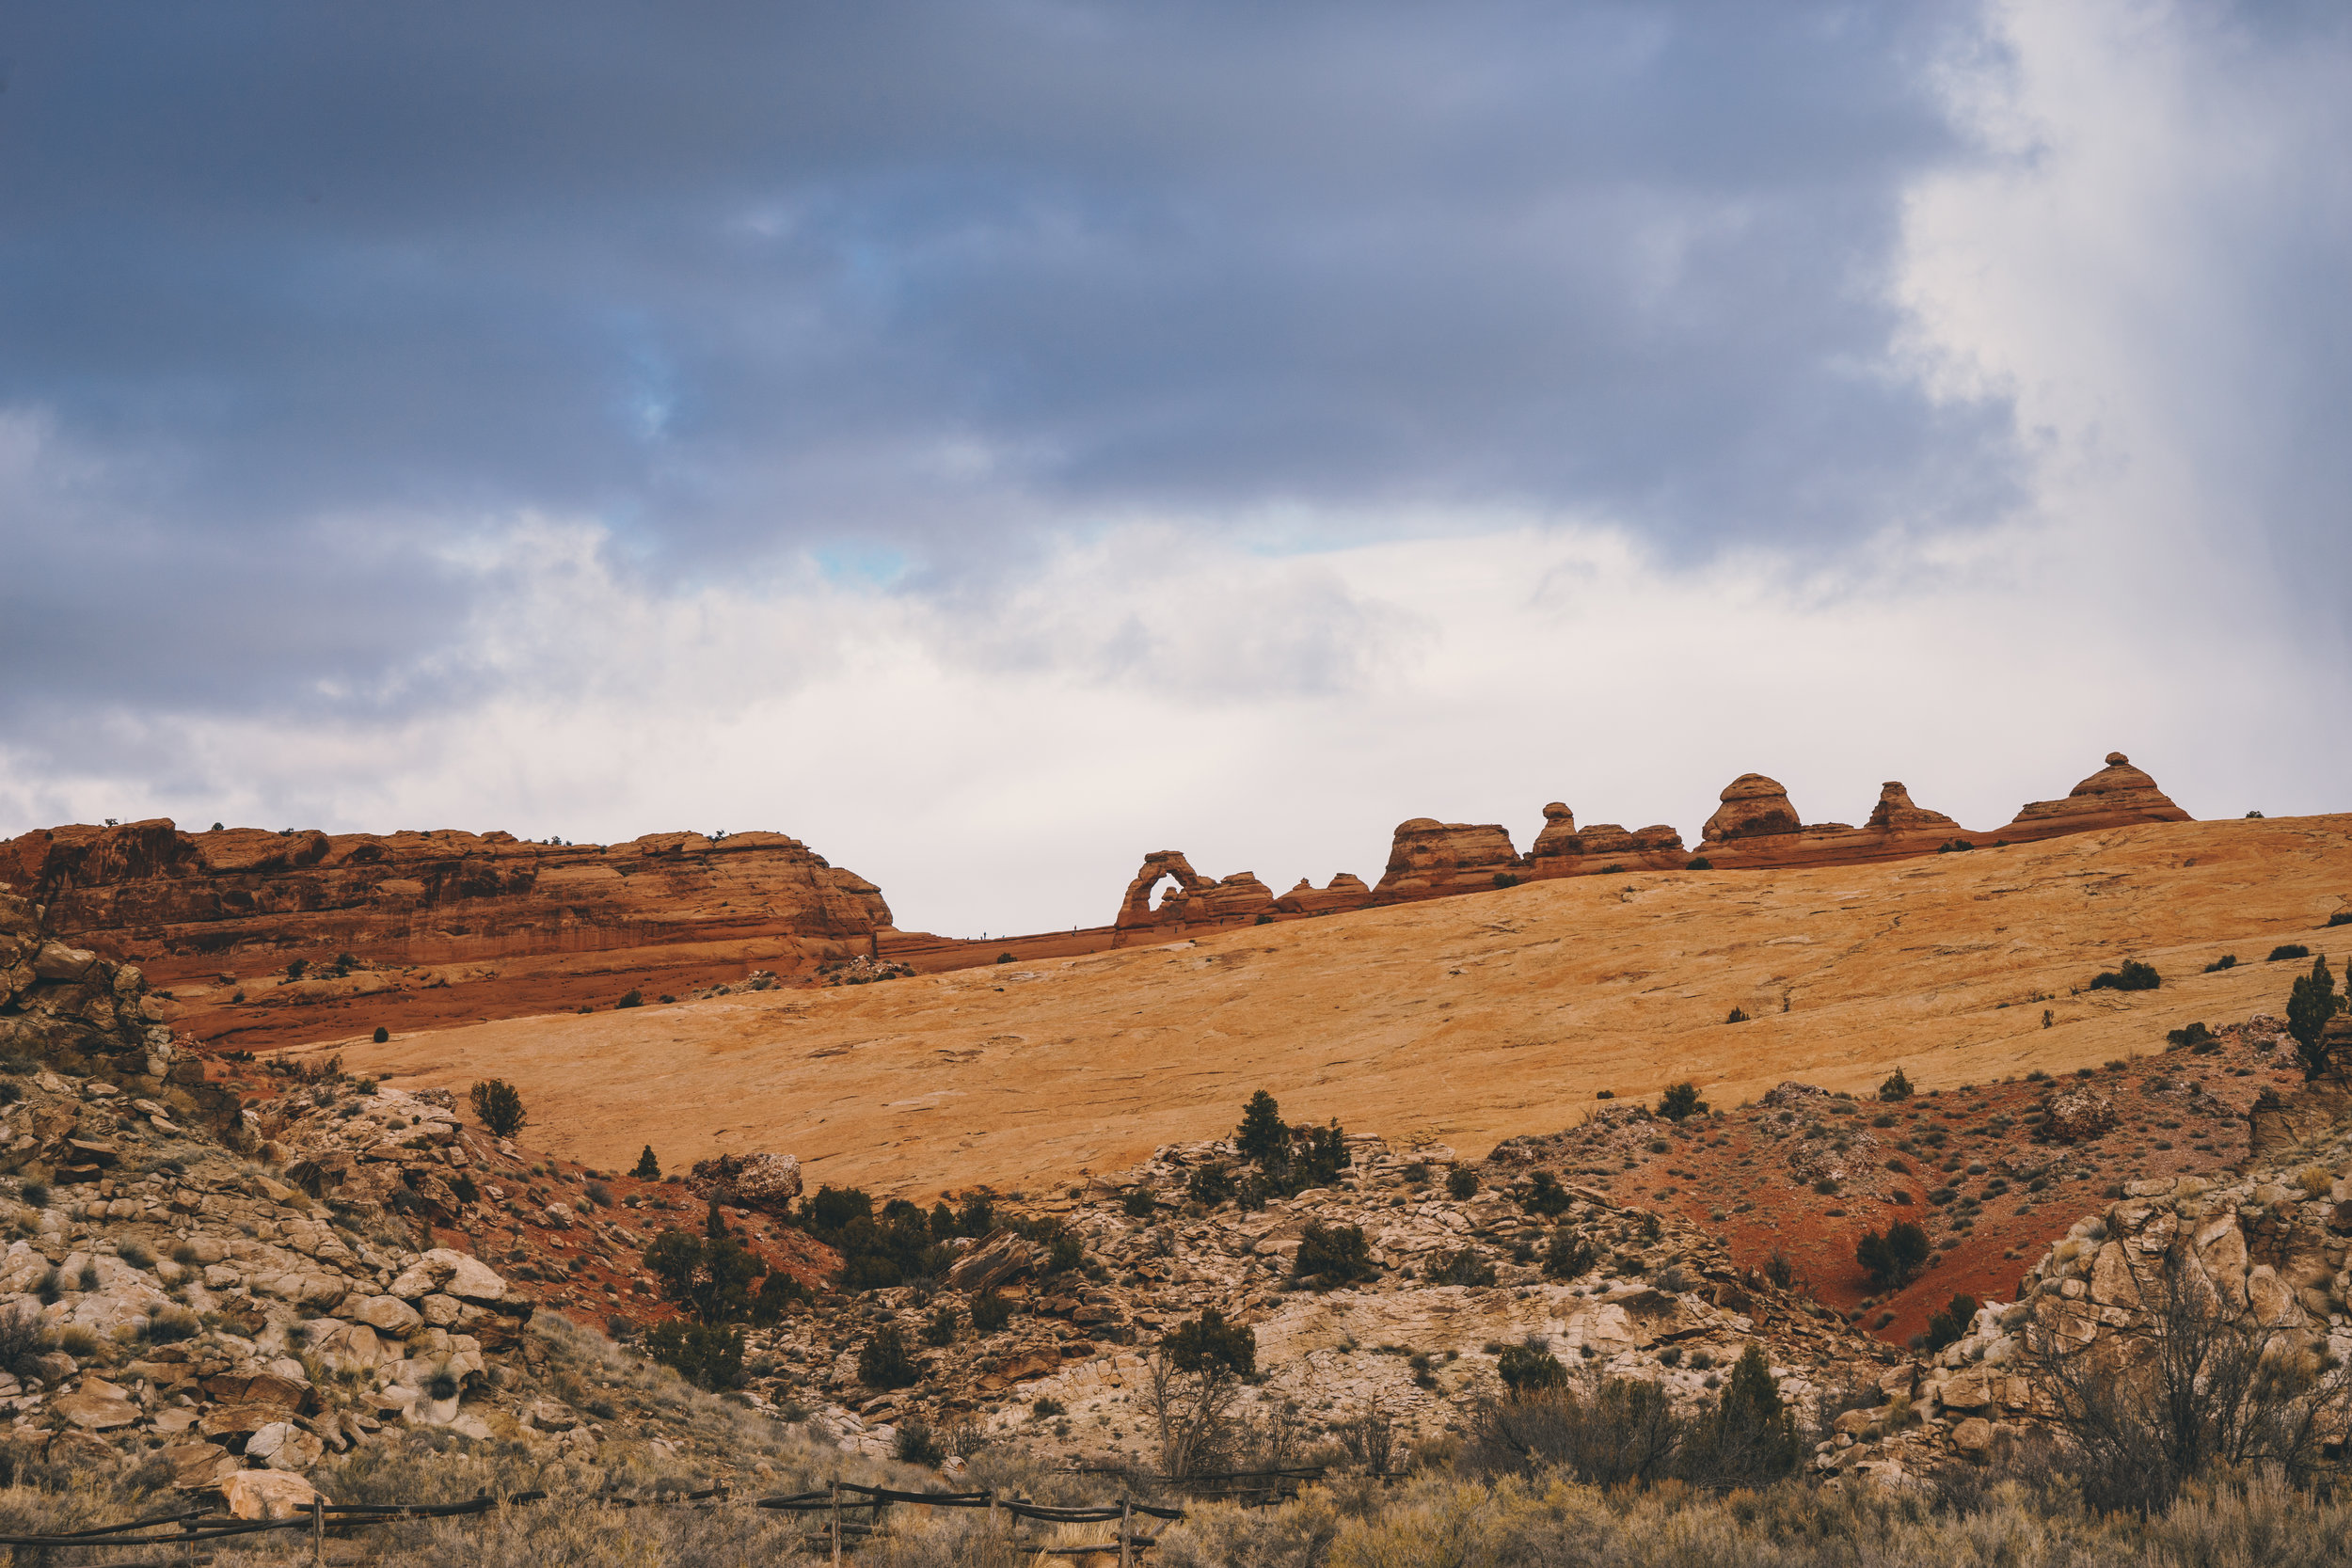 The  Delicate Arch   (middle)as seen from the  Lower Delicated Arch Viewpoint